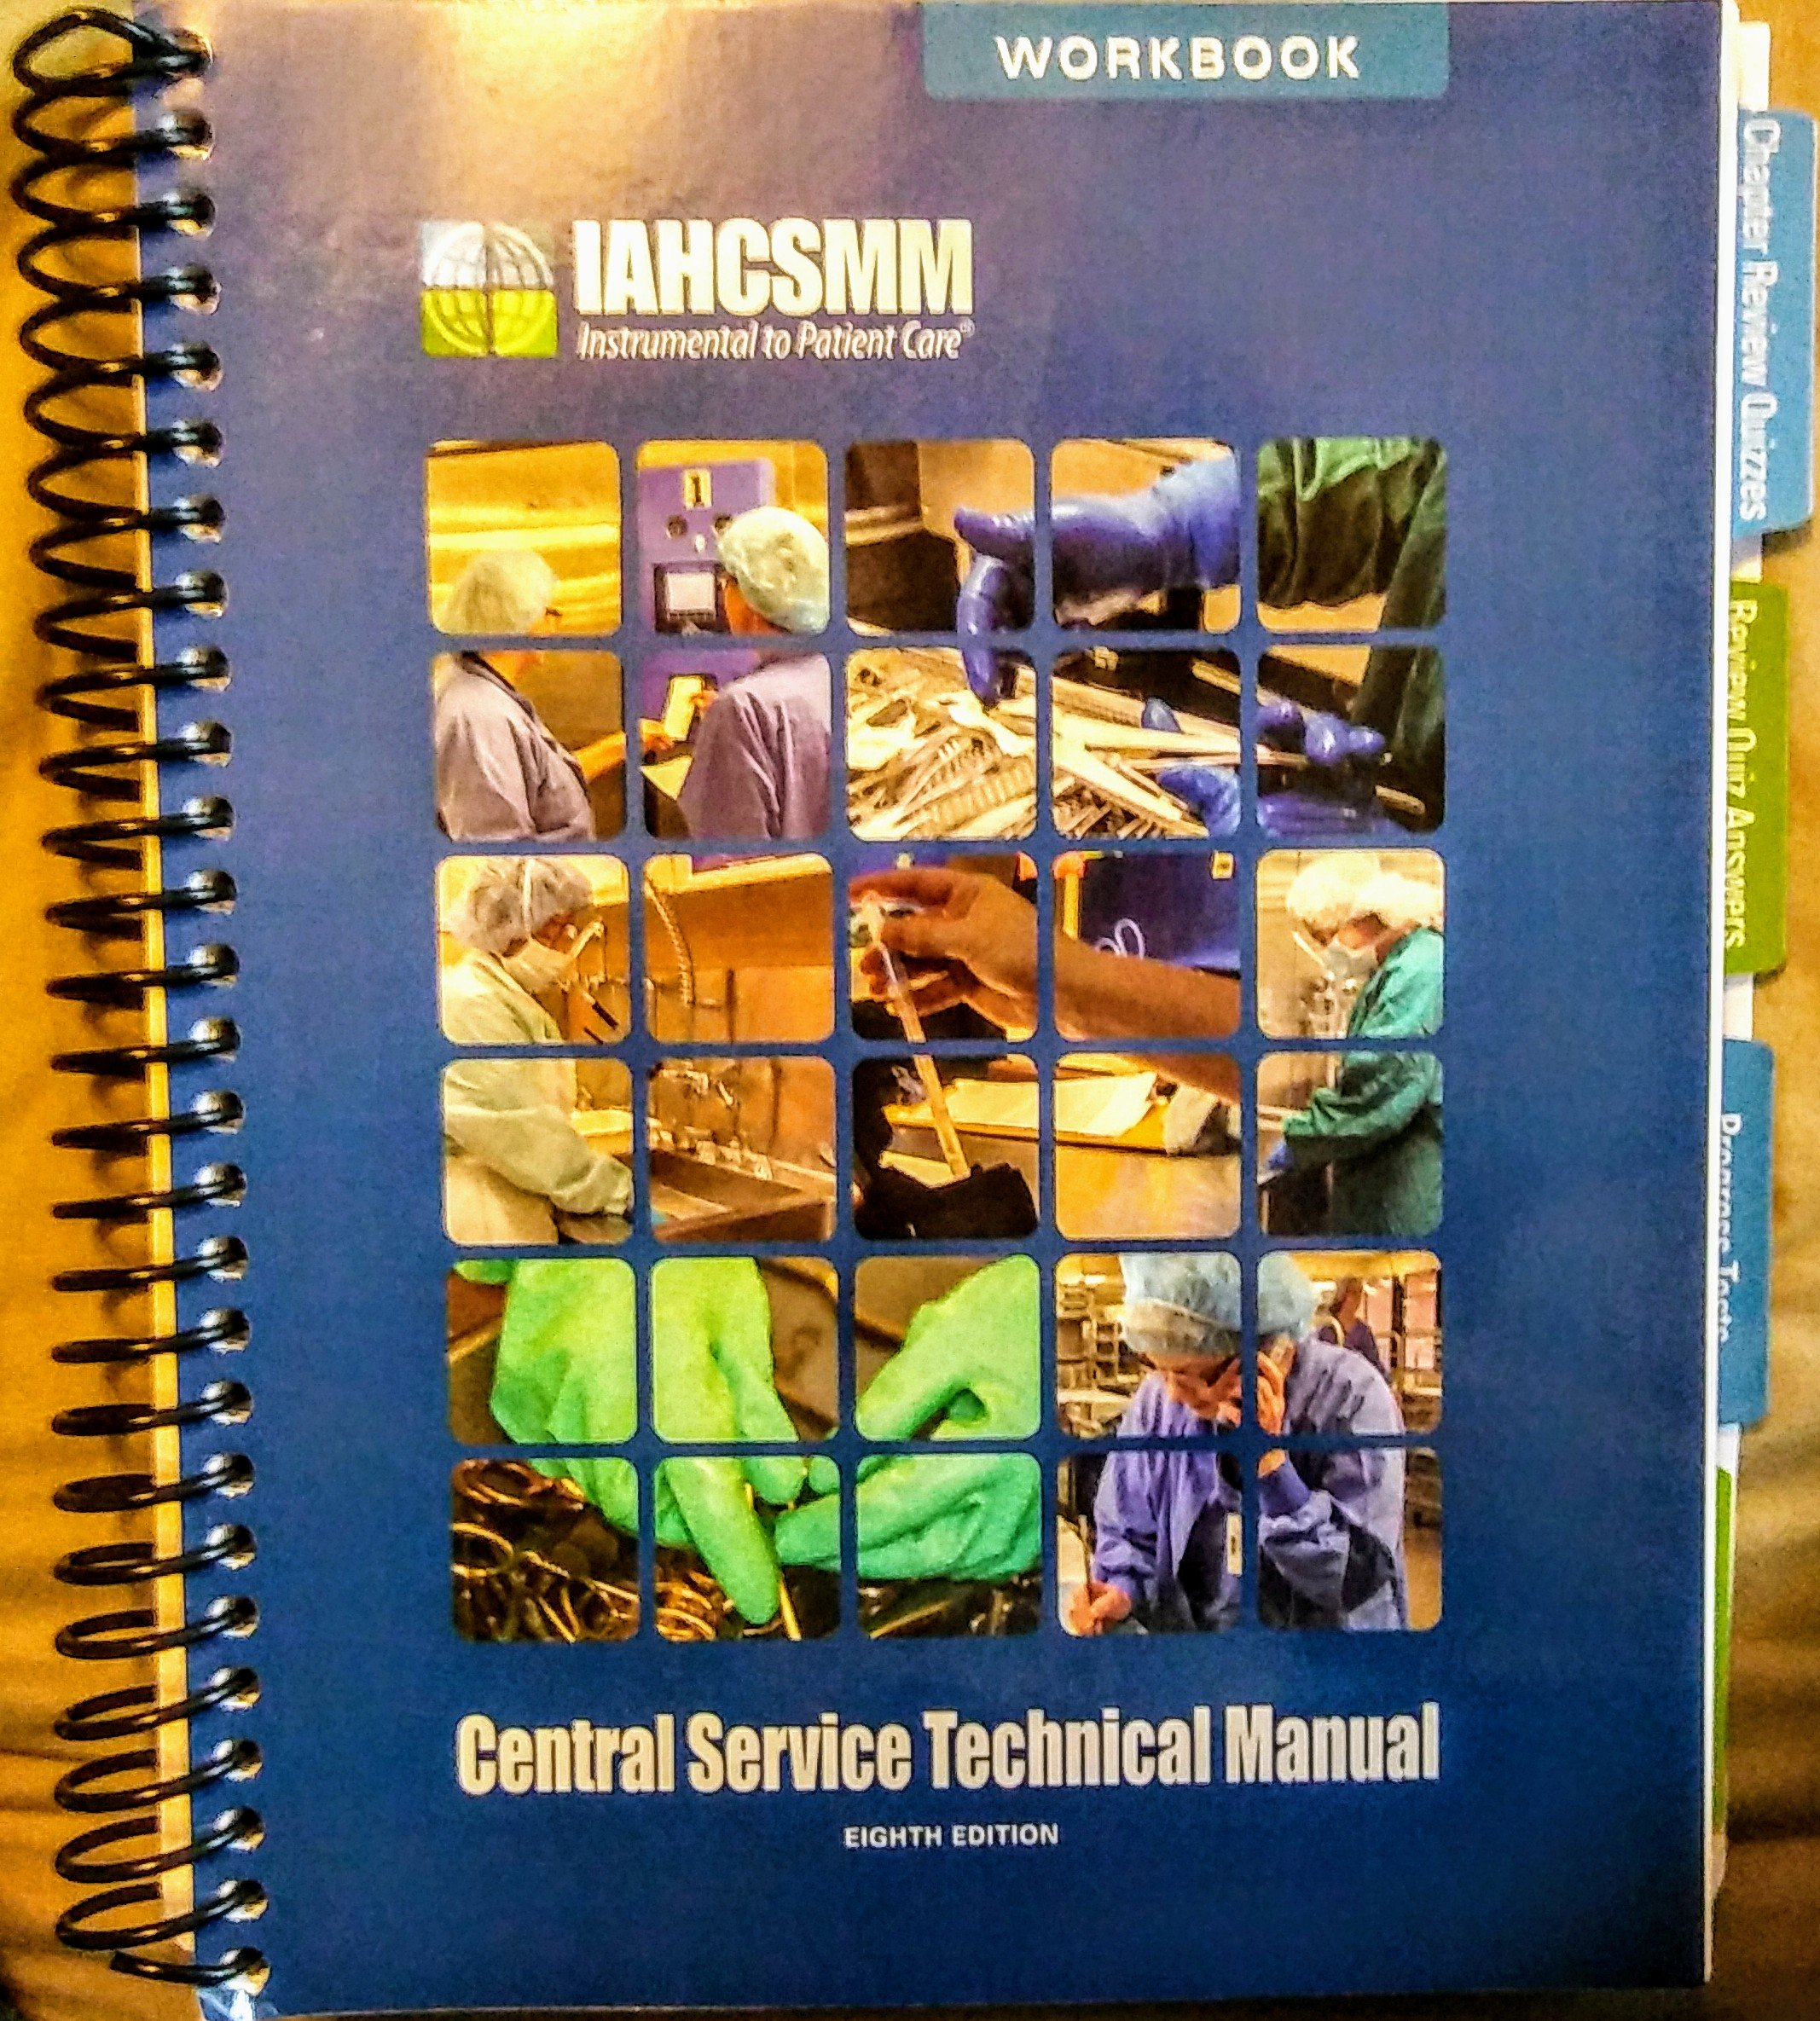 Central Service Technical Manual (CRCST) Workbook 8th Edition: IAHCSMM:  9781495189050: Amazon.com: Books